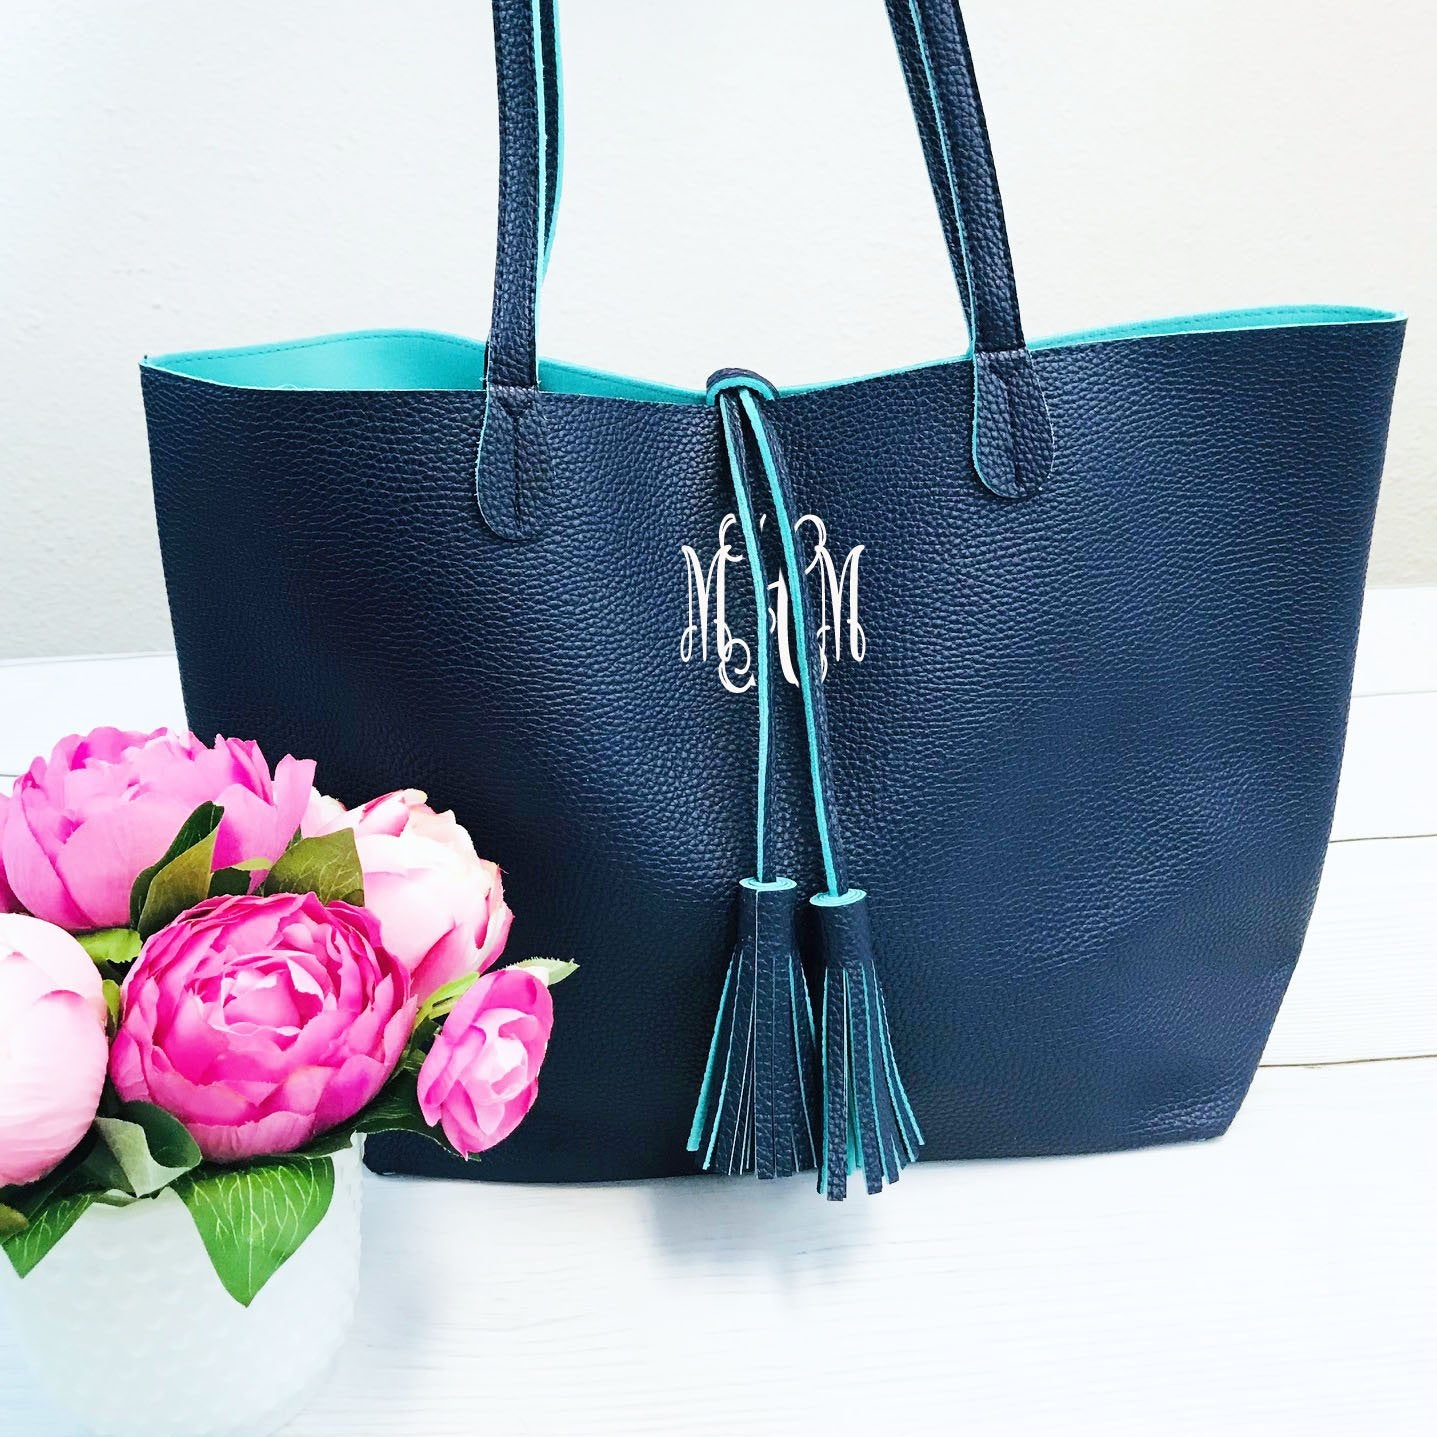 Embellish Navy and Aqua Faux Leather Purse with Tassel Tie | Monogrammed | QUICK SHIP